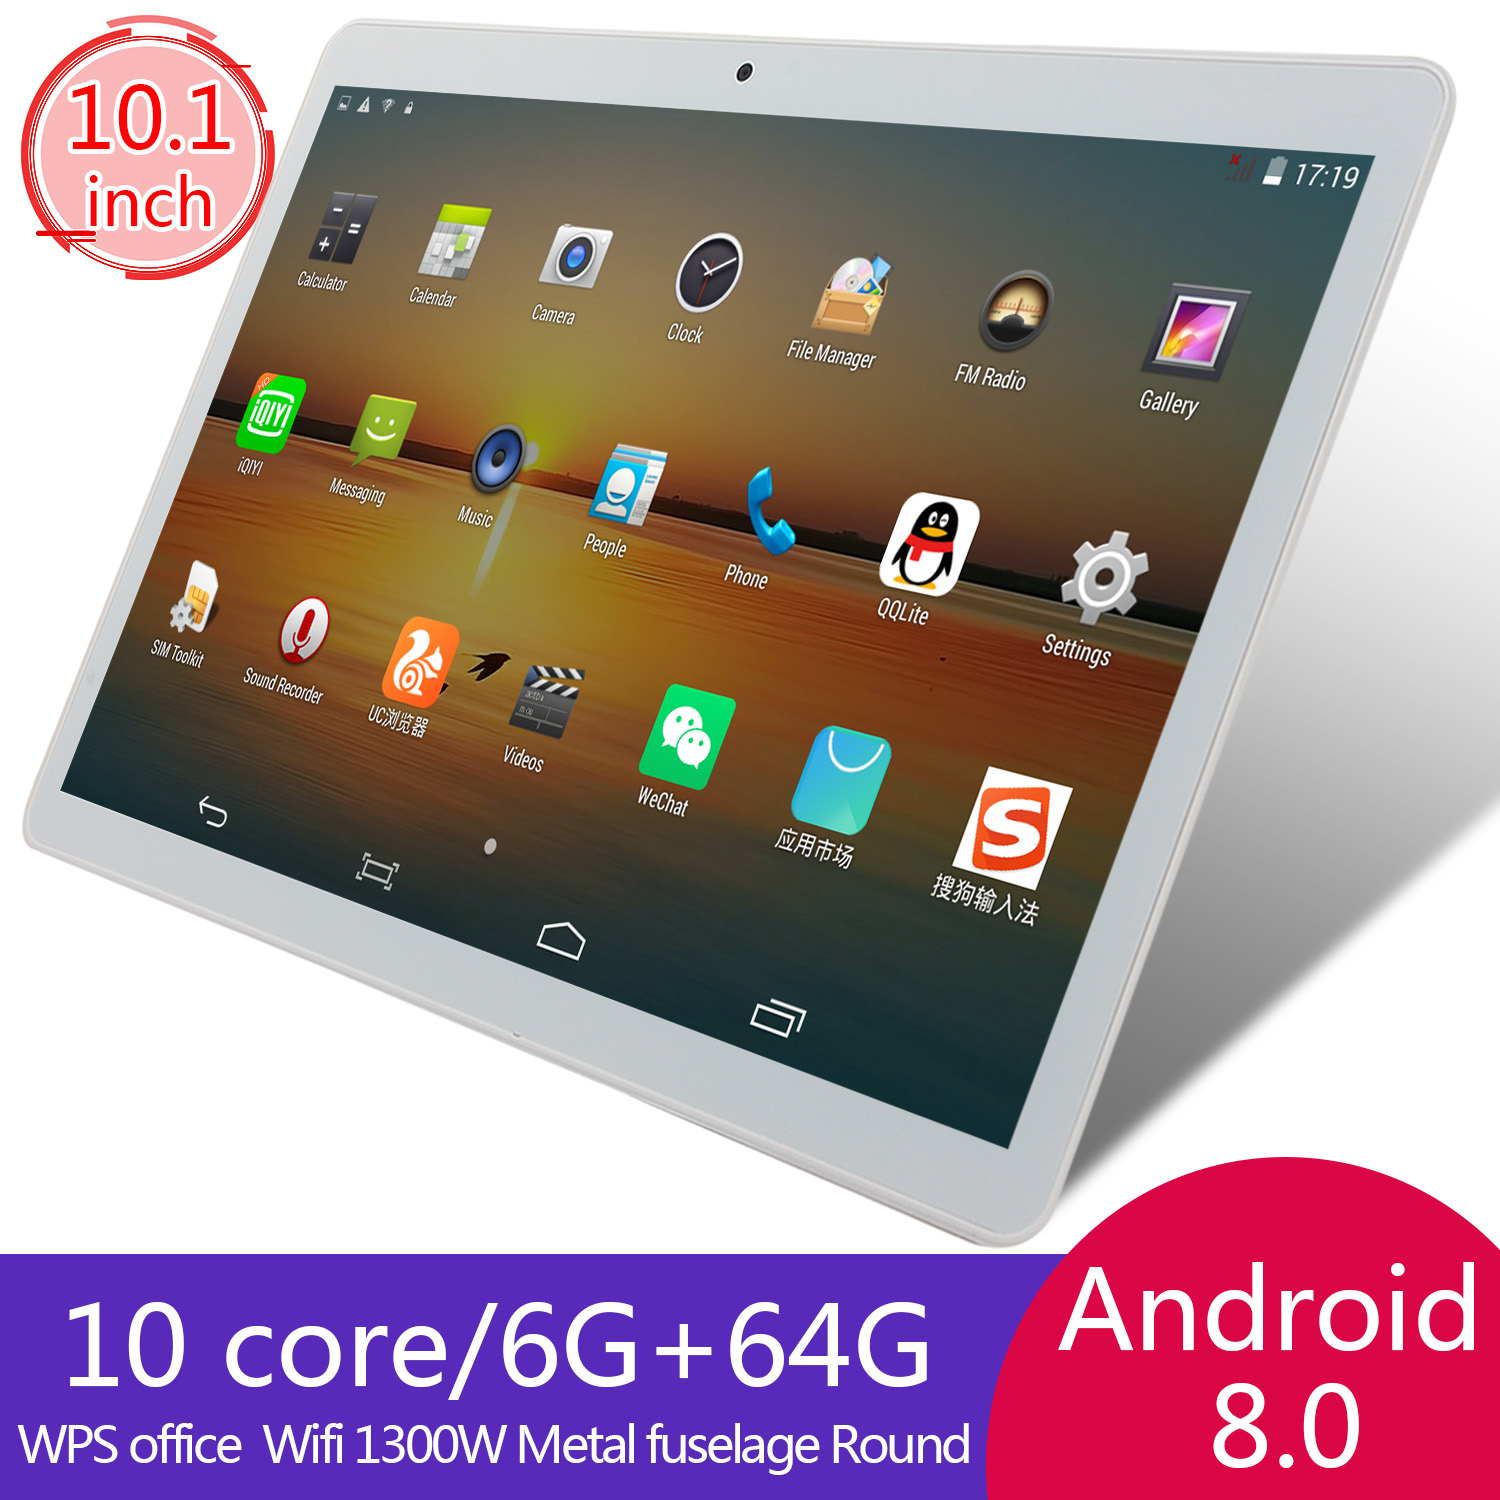 KIVBWY 10 Inch Tablet Pc Octa Core 4G Phone Call Google Market GPS WiFi FM Bluetooth 10.1 Tablets 6G+64G Android 8.0 Tab